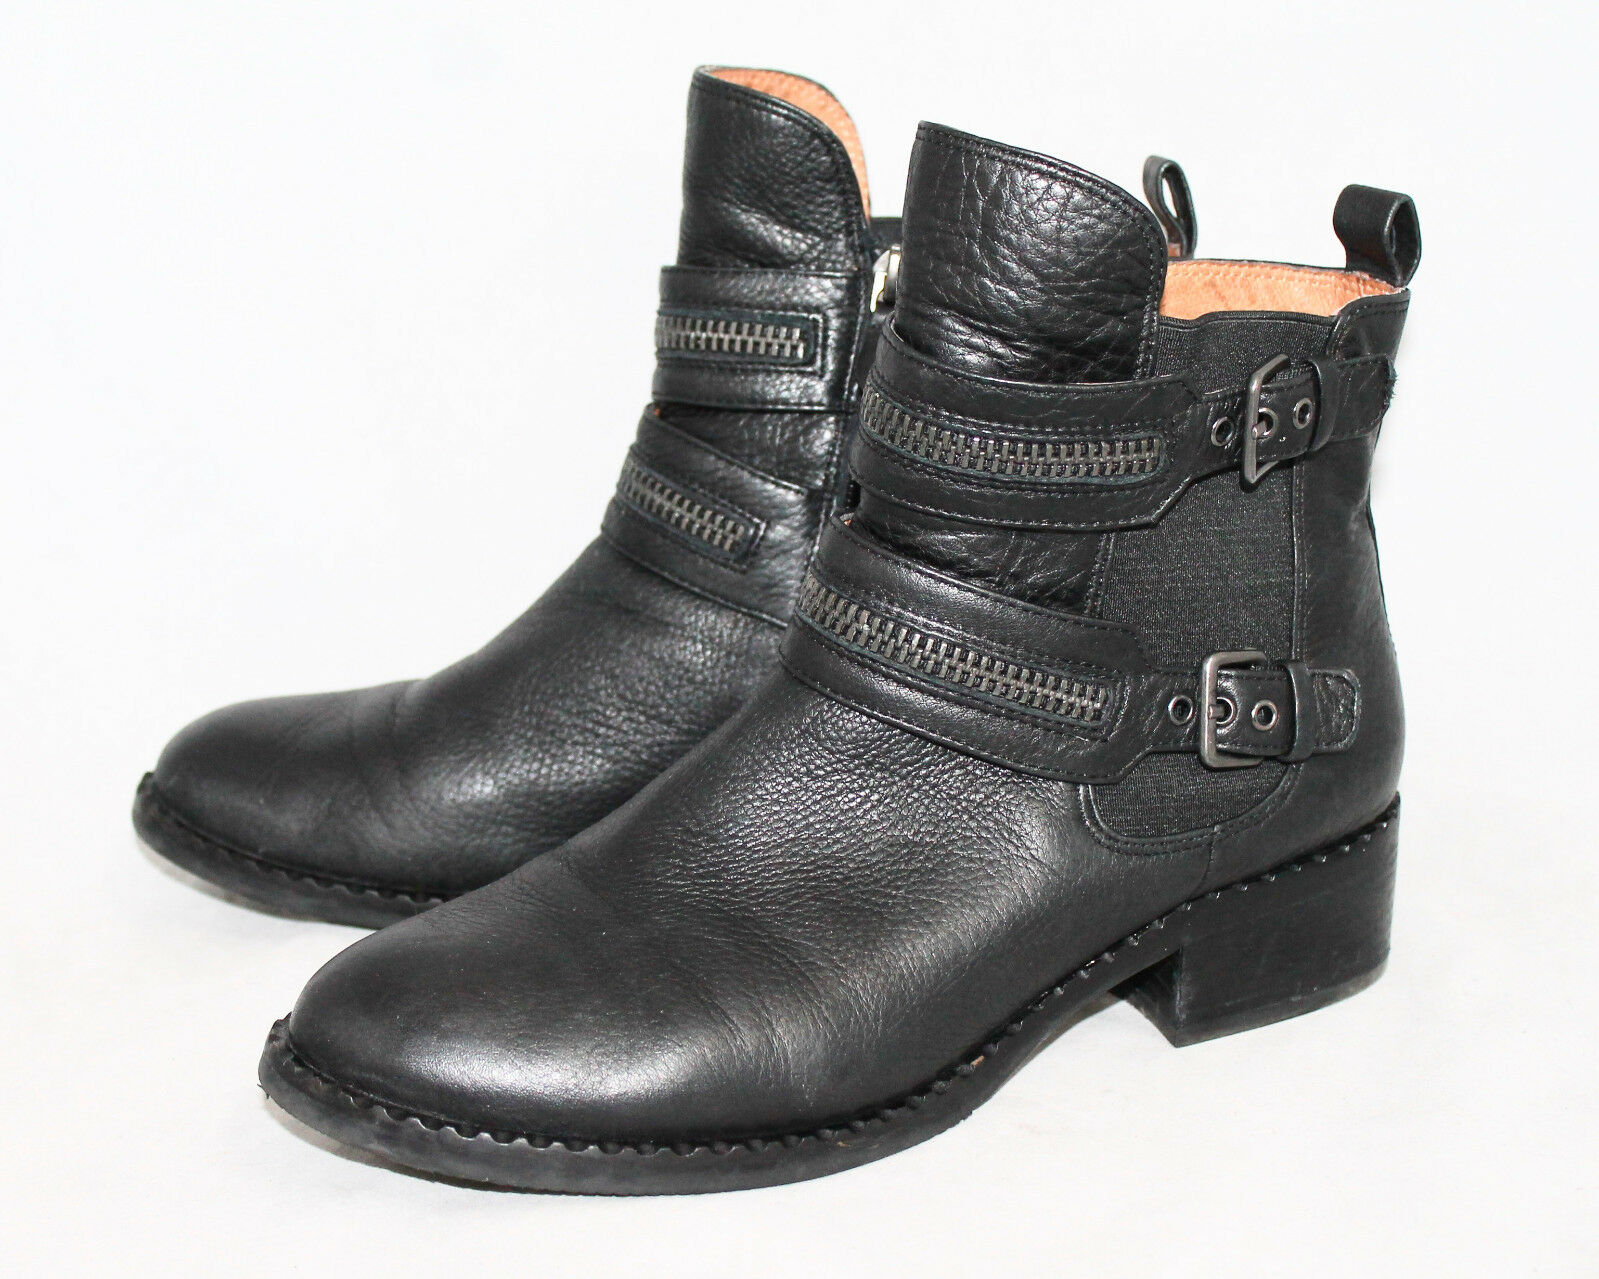 GENTLE SOULS Barberton Boot Wo's 8.5M Black Leather Side Zipper Chelsea Hi Ankle